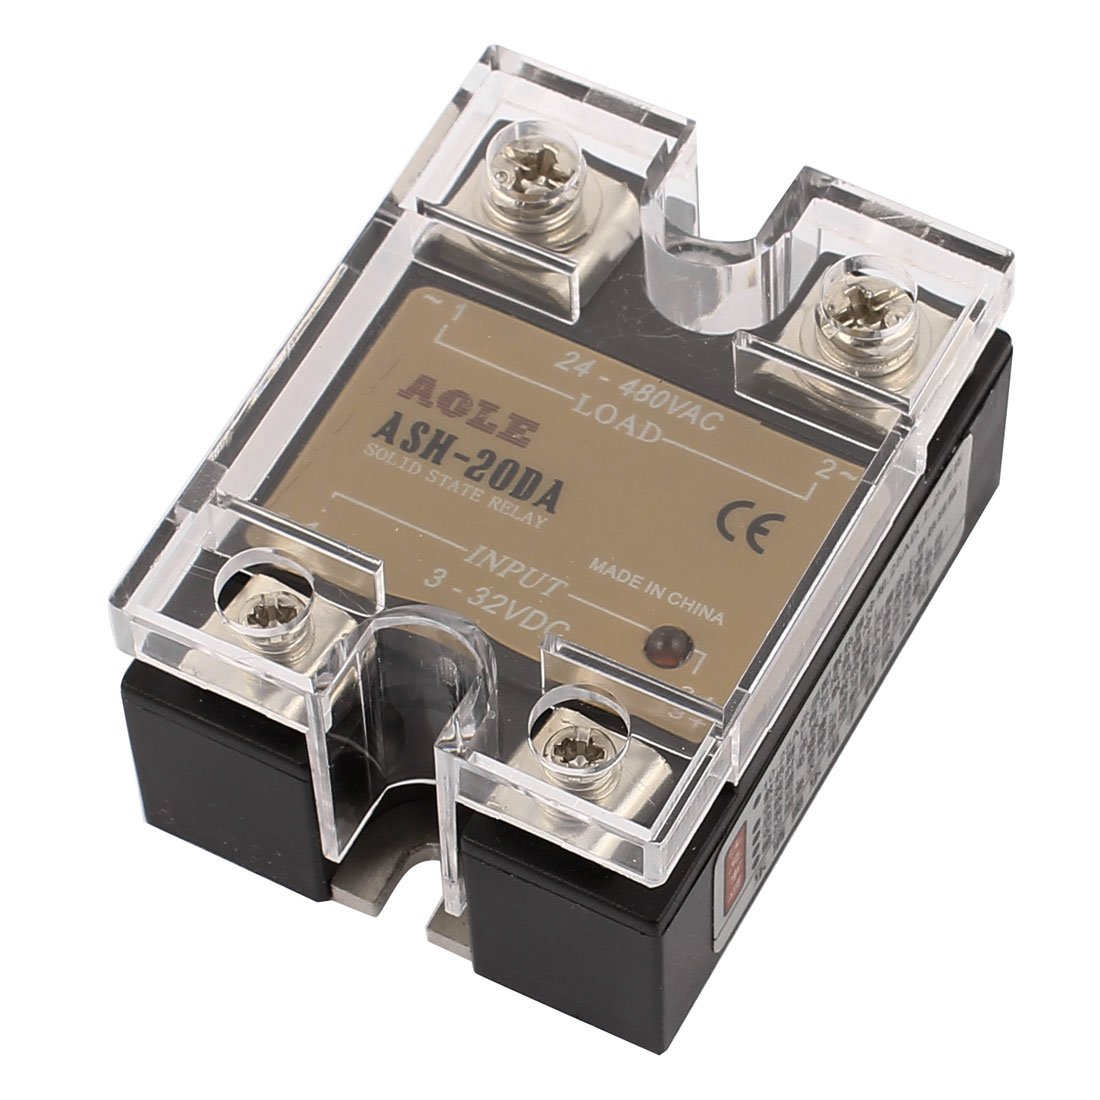 sourcingmap® ASH-20DA 3-32VDC to 480VAC 20A Single Phase Solid State DC to AC Relay Authorized a16081800ux0773